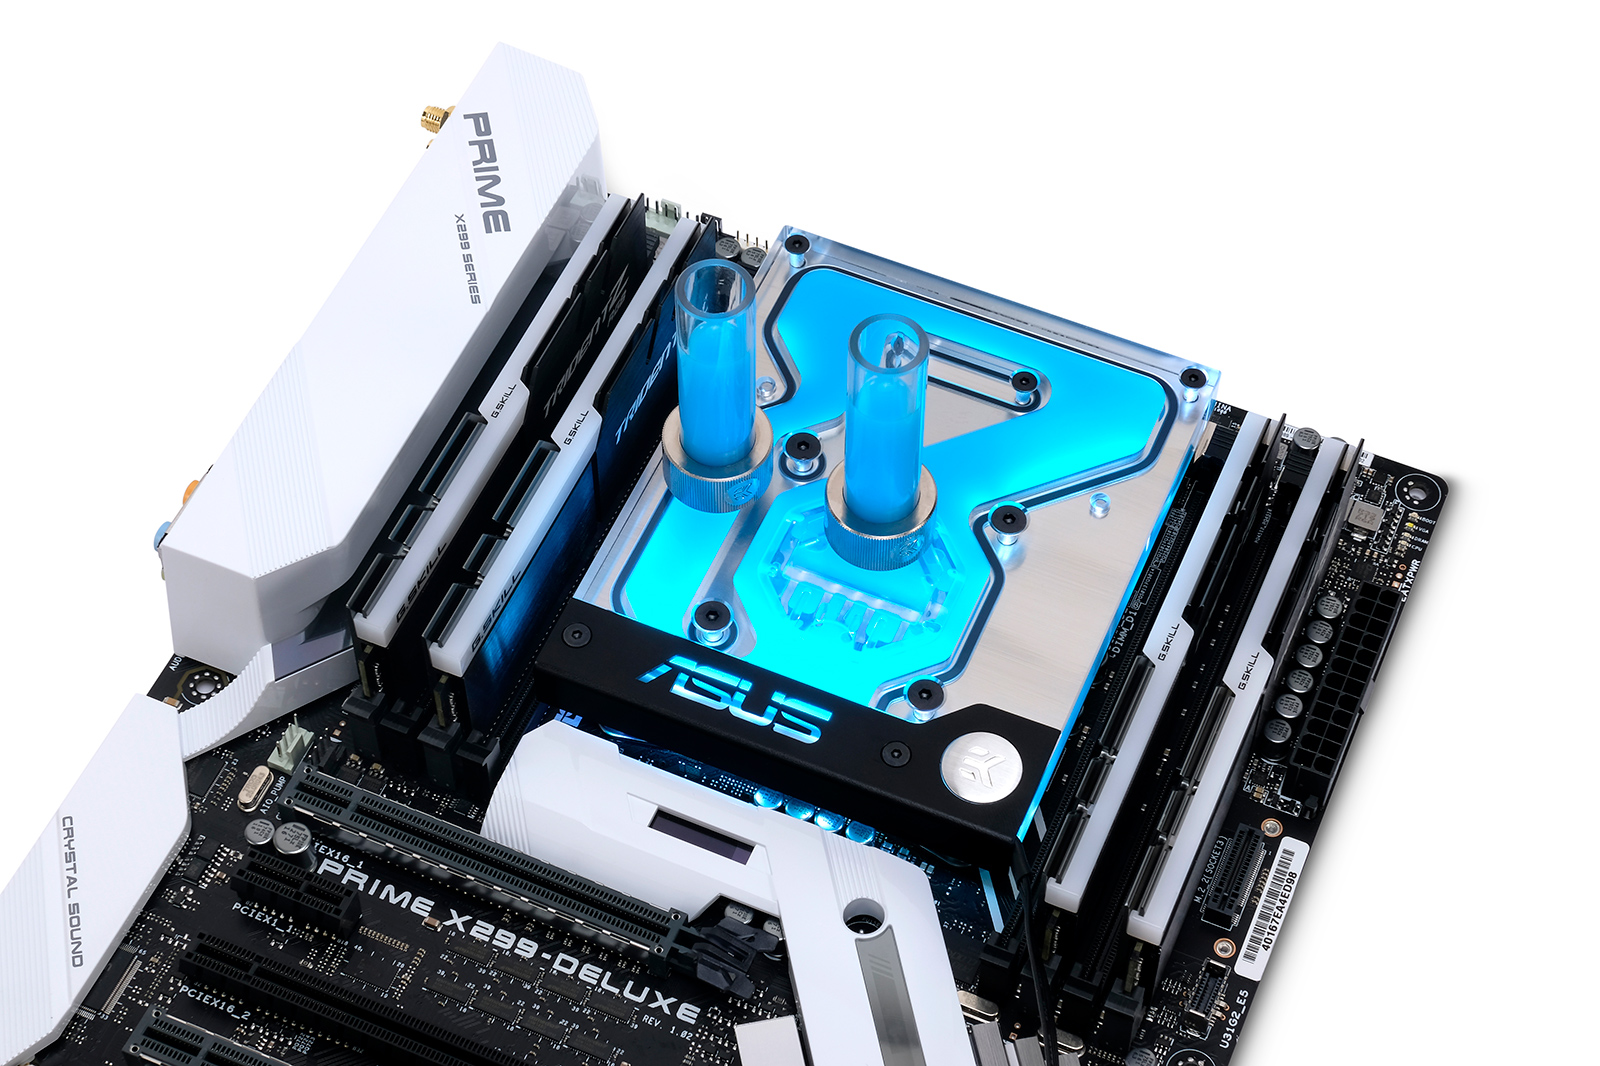 EK is releasing a new RGB monoblock for several ASUS® X299